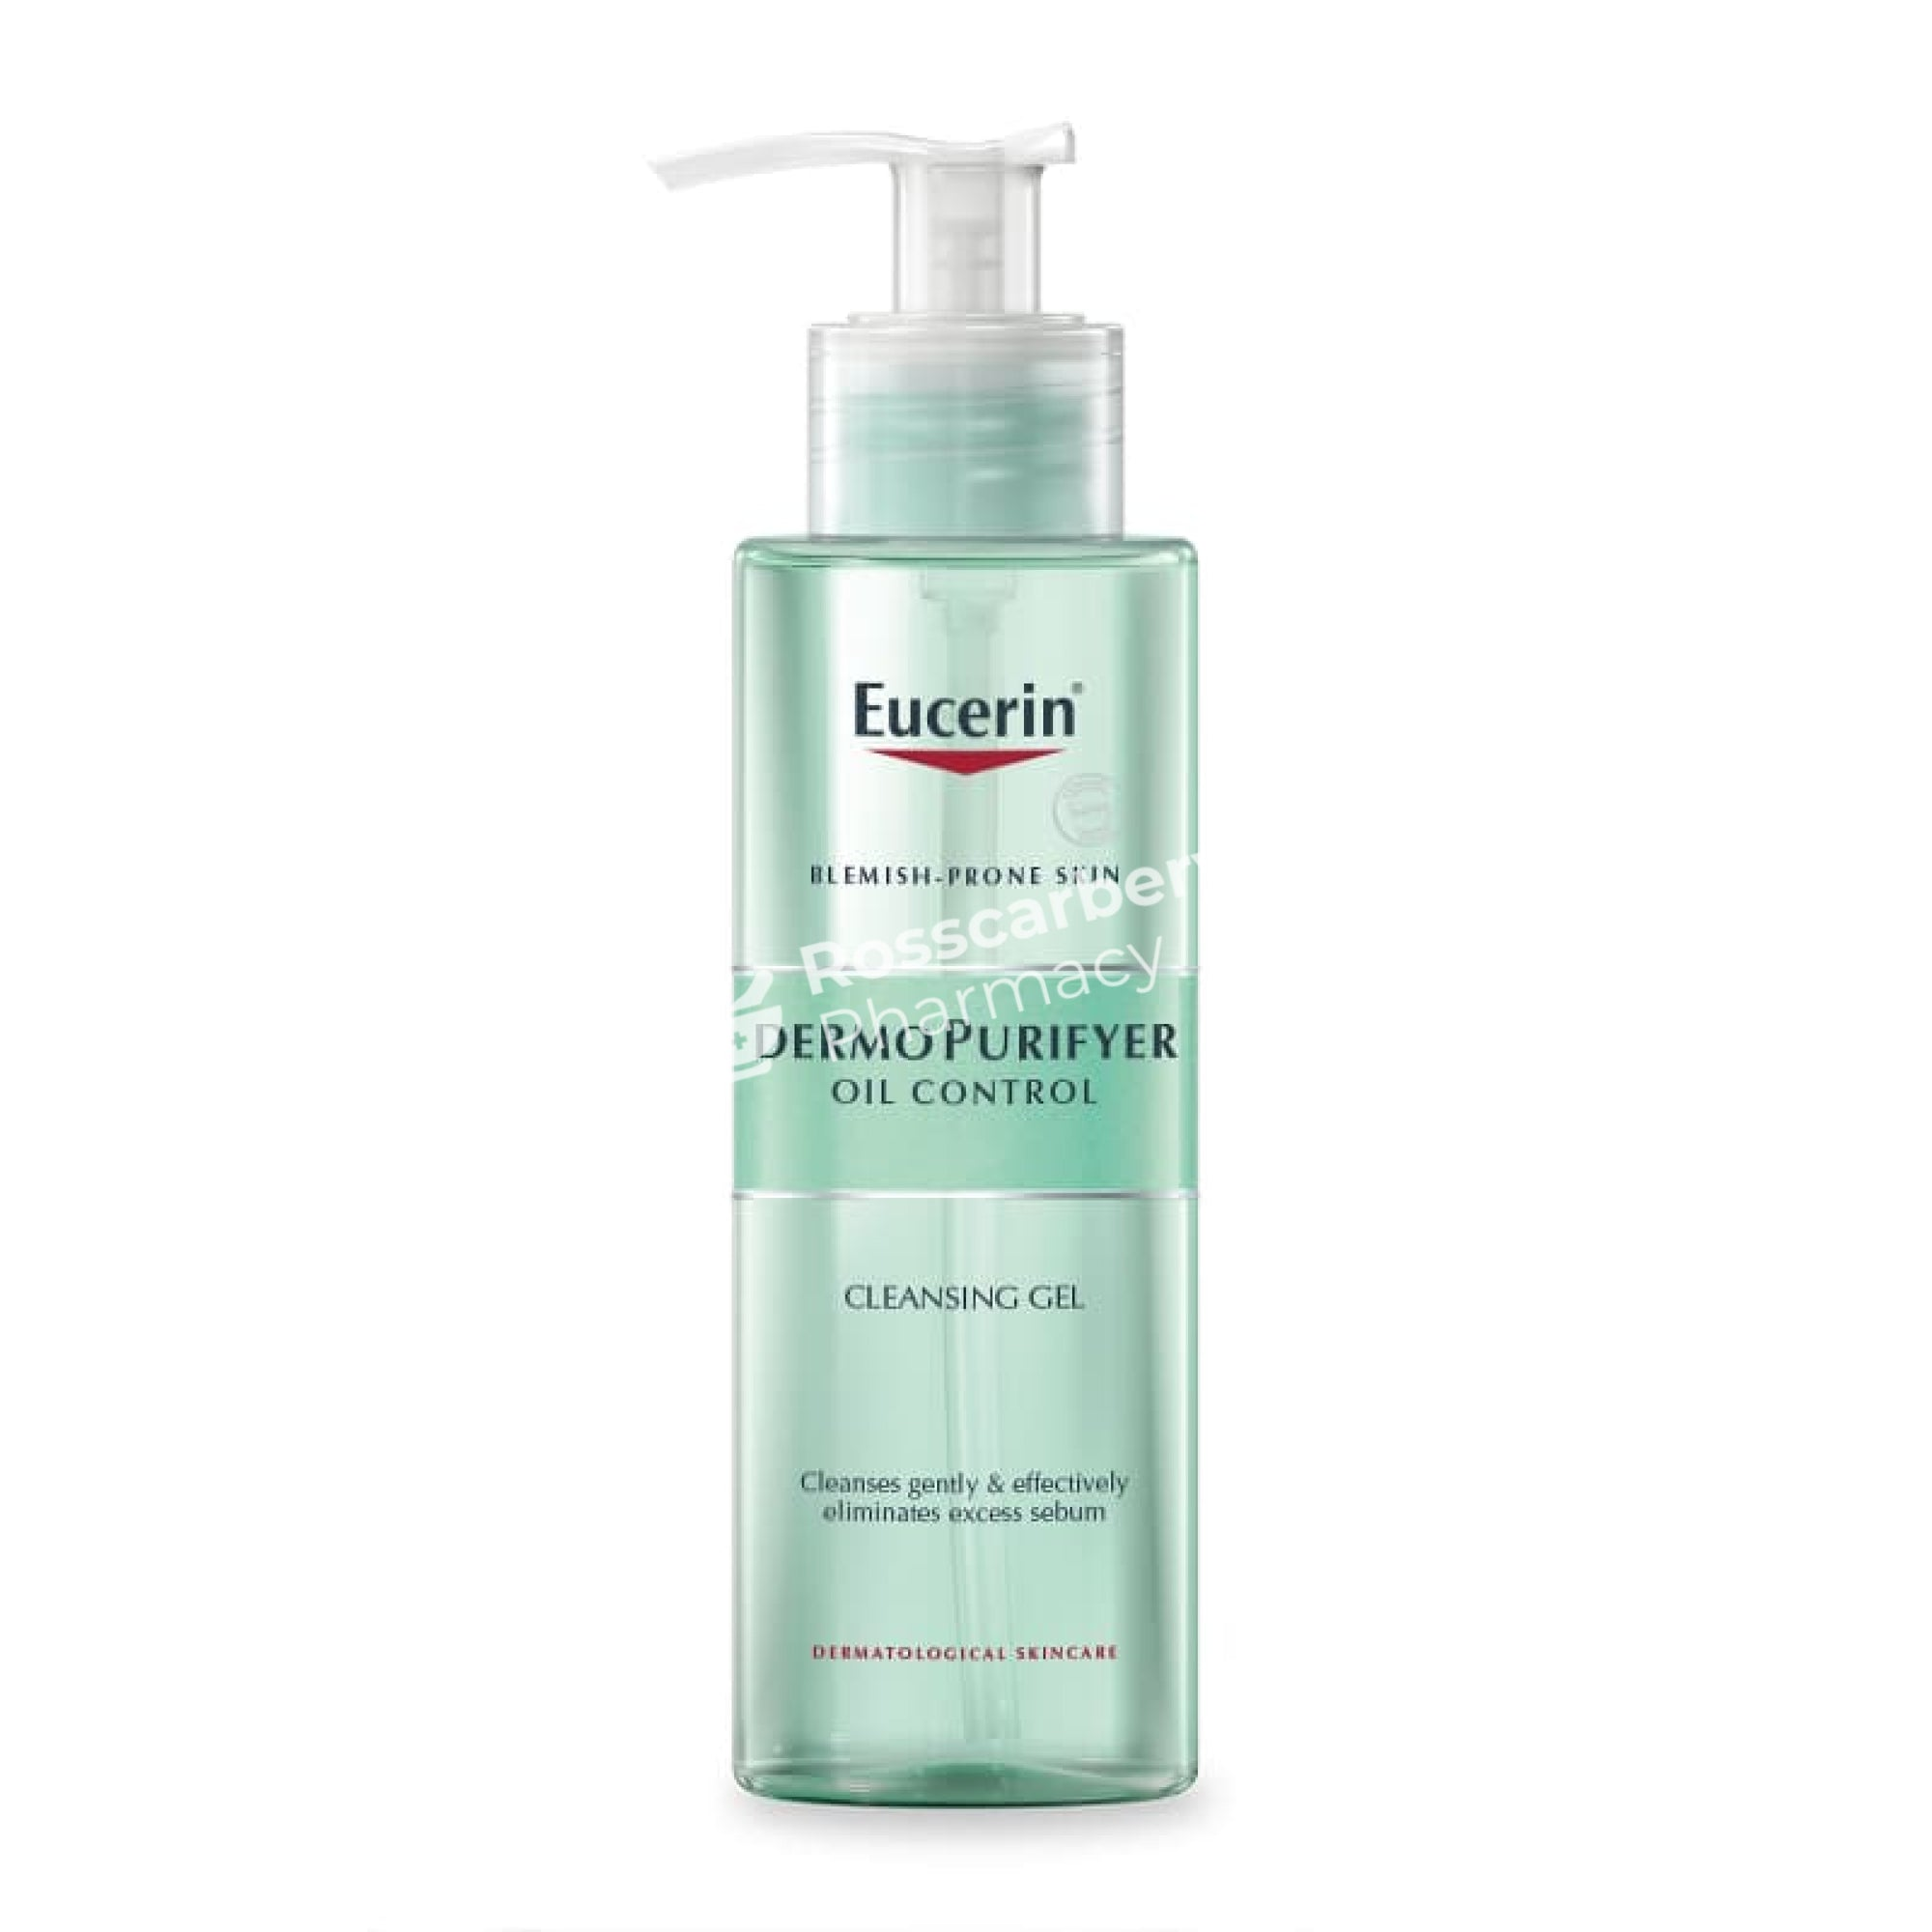 Eucerin Dermo Purifyer Oil Control Cleansing Gel Cleanser